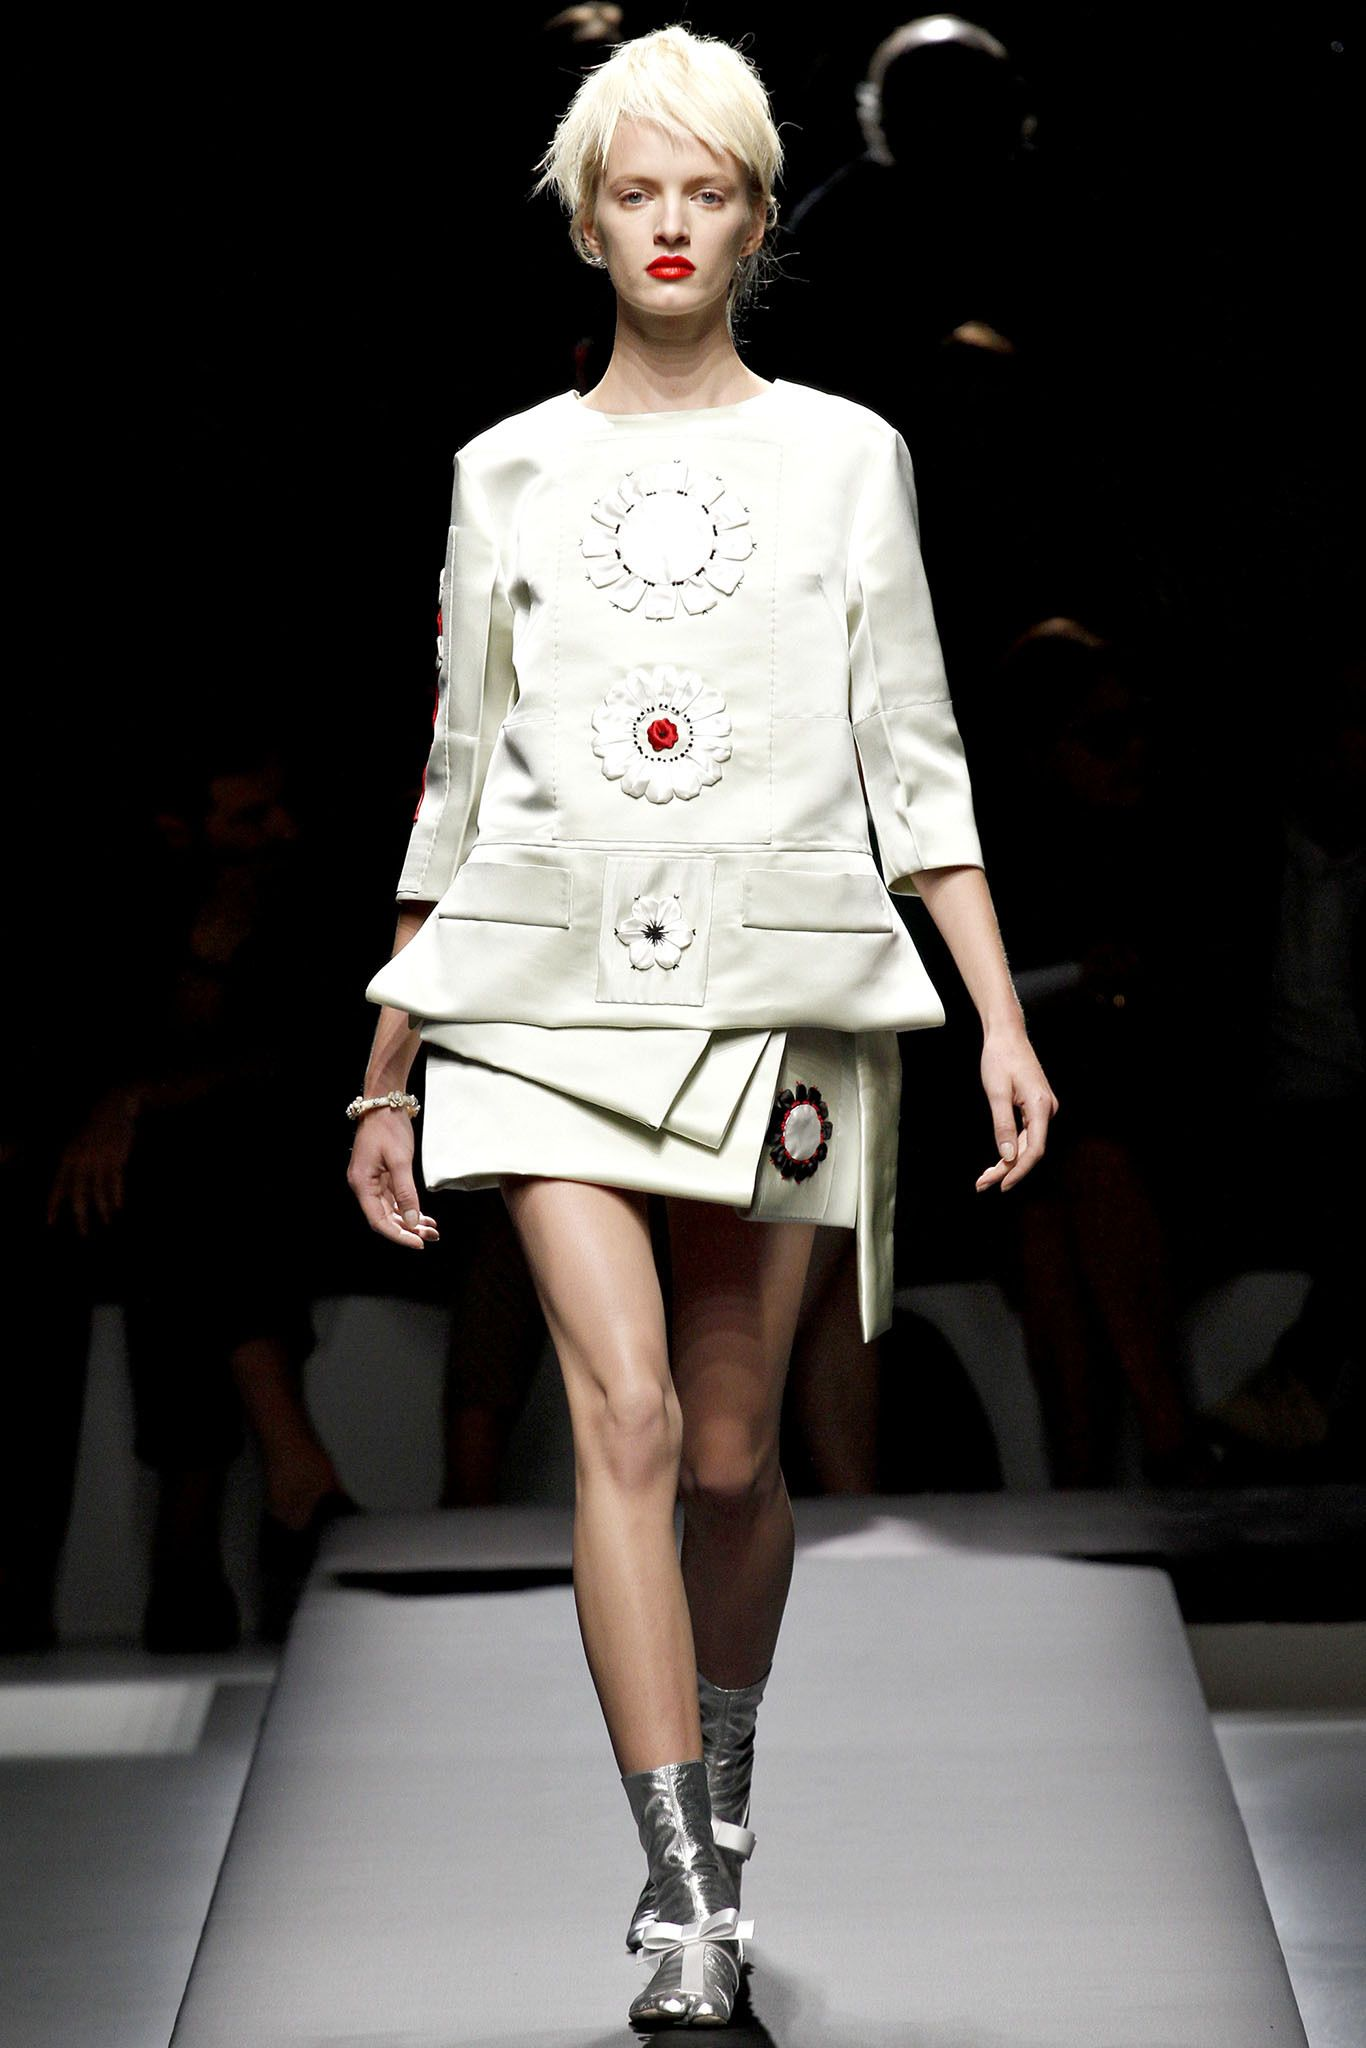 e4c27d7bf03d Prada Spring 2013 Ready-to-Wear Collection Slideshow on Style.com ...